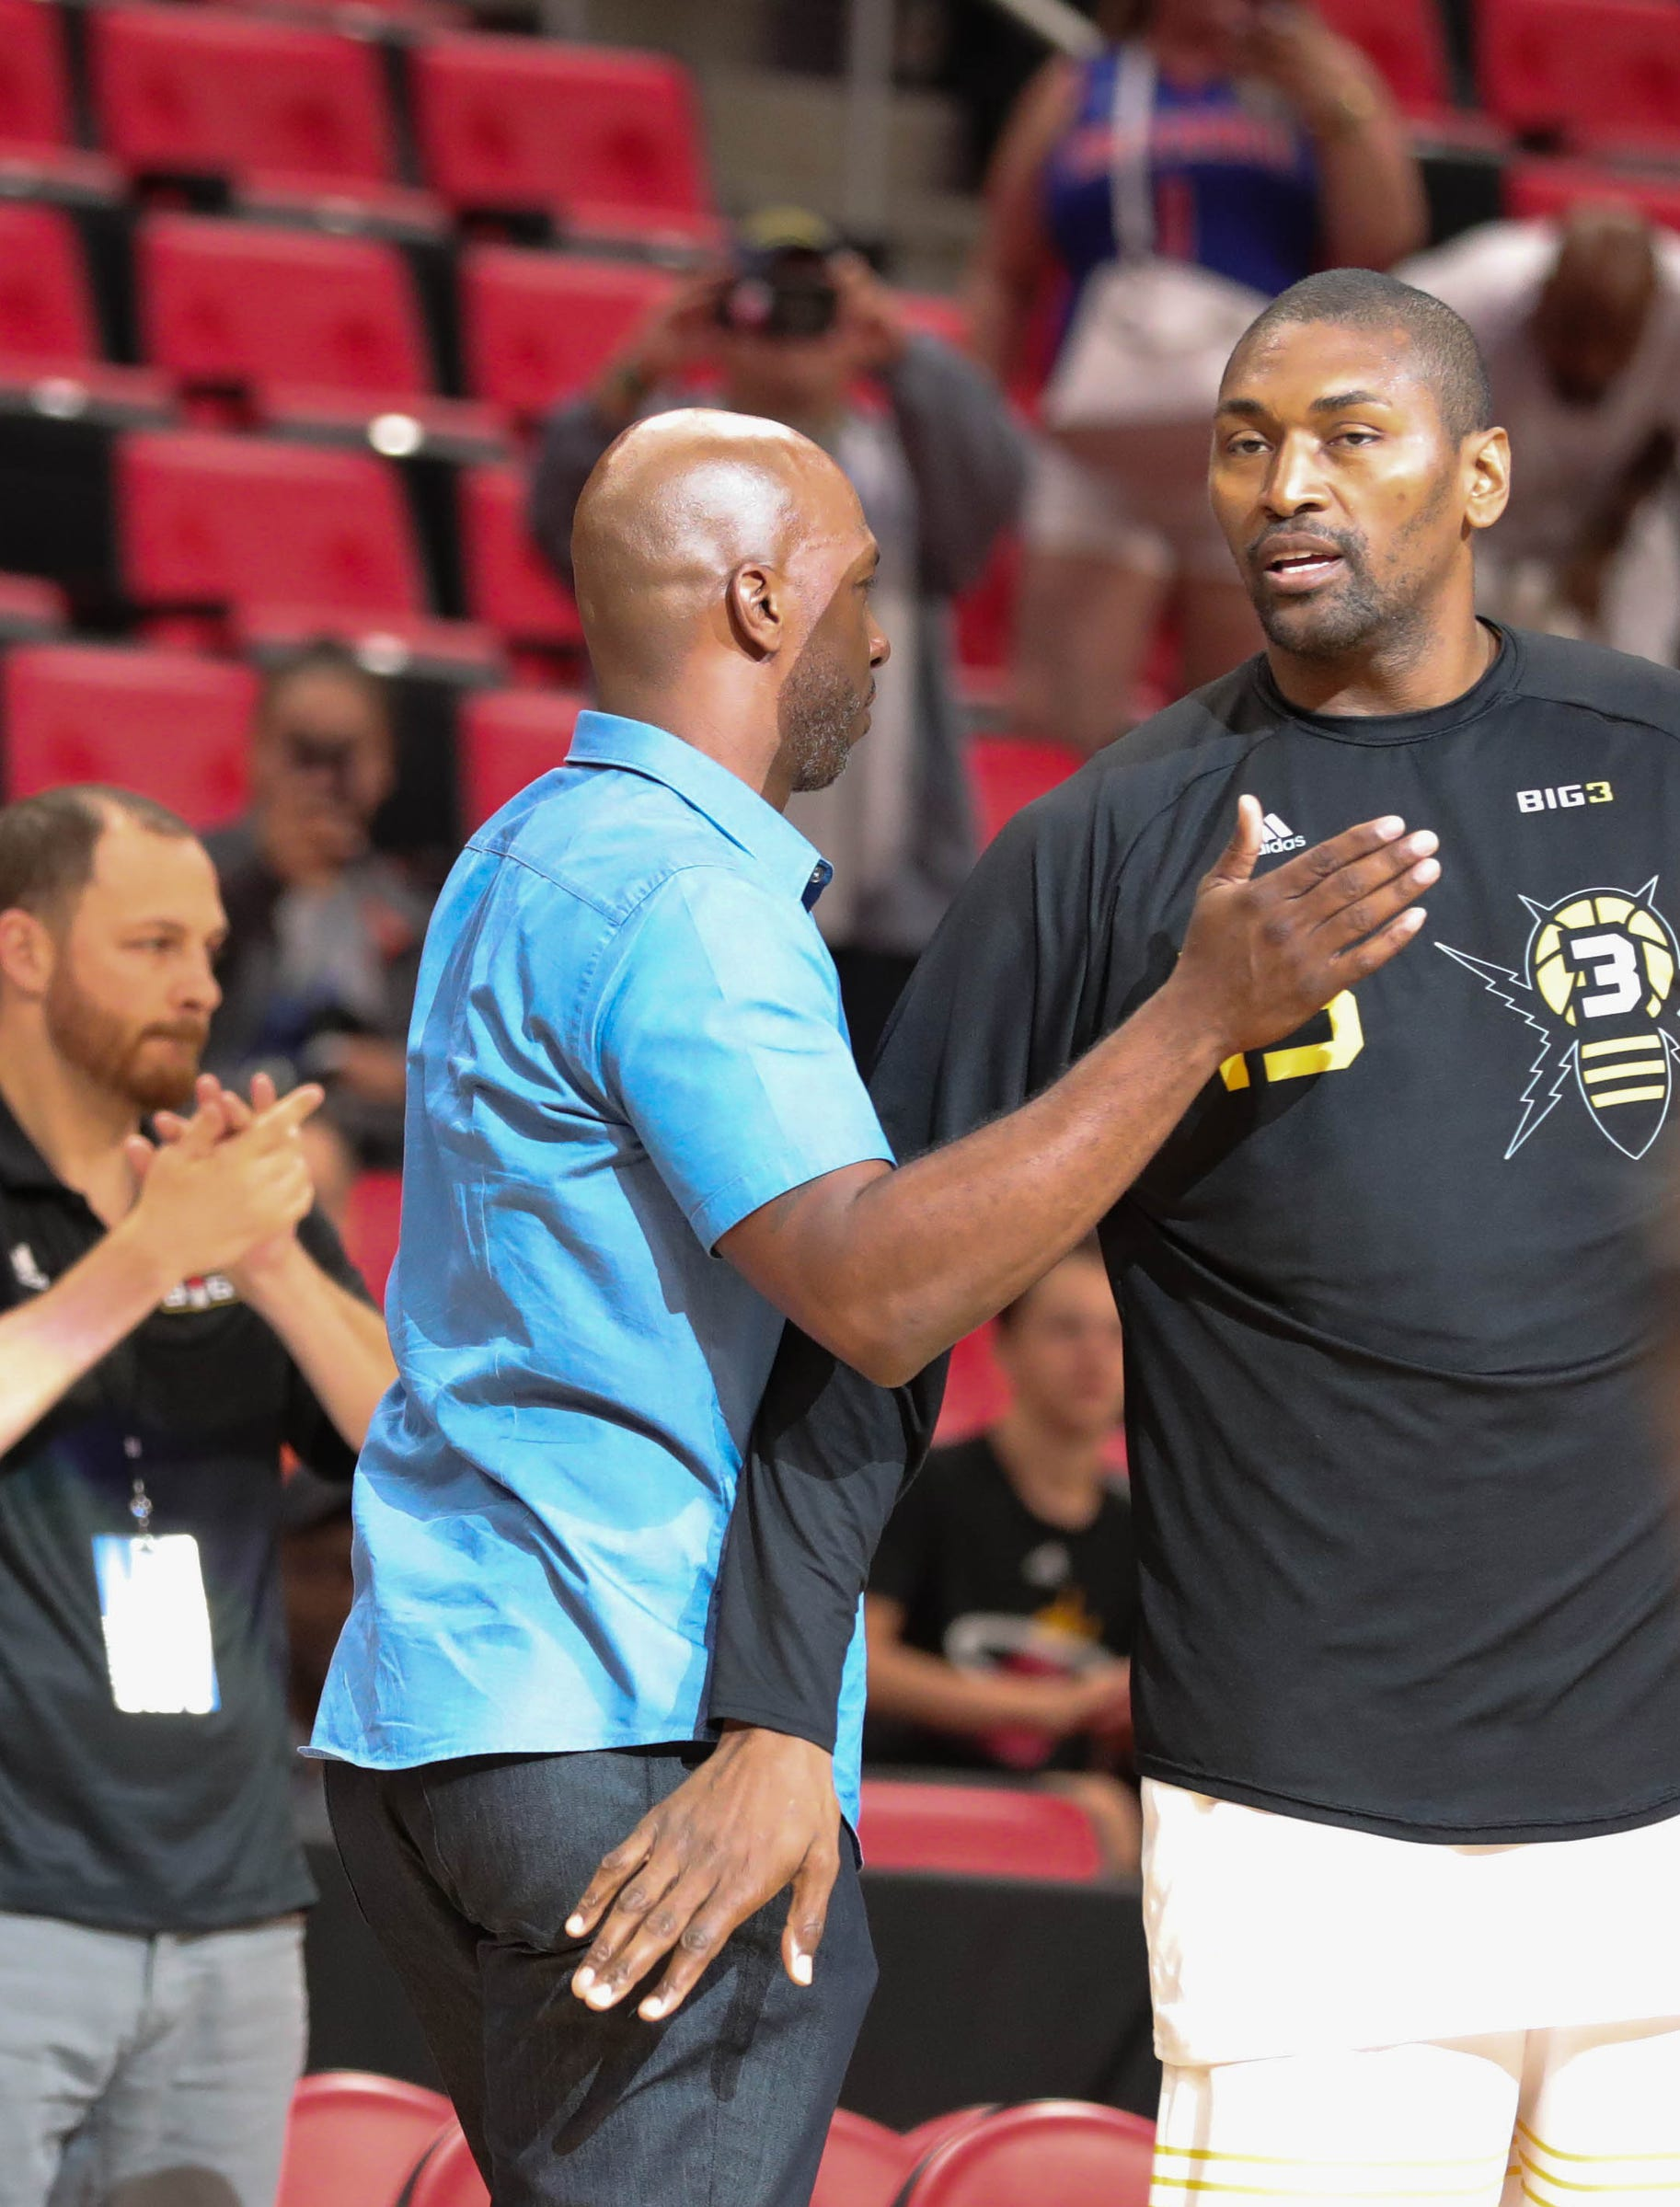 Chauncey Billups And Metta World Peace Before Big Action On Friday July